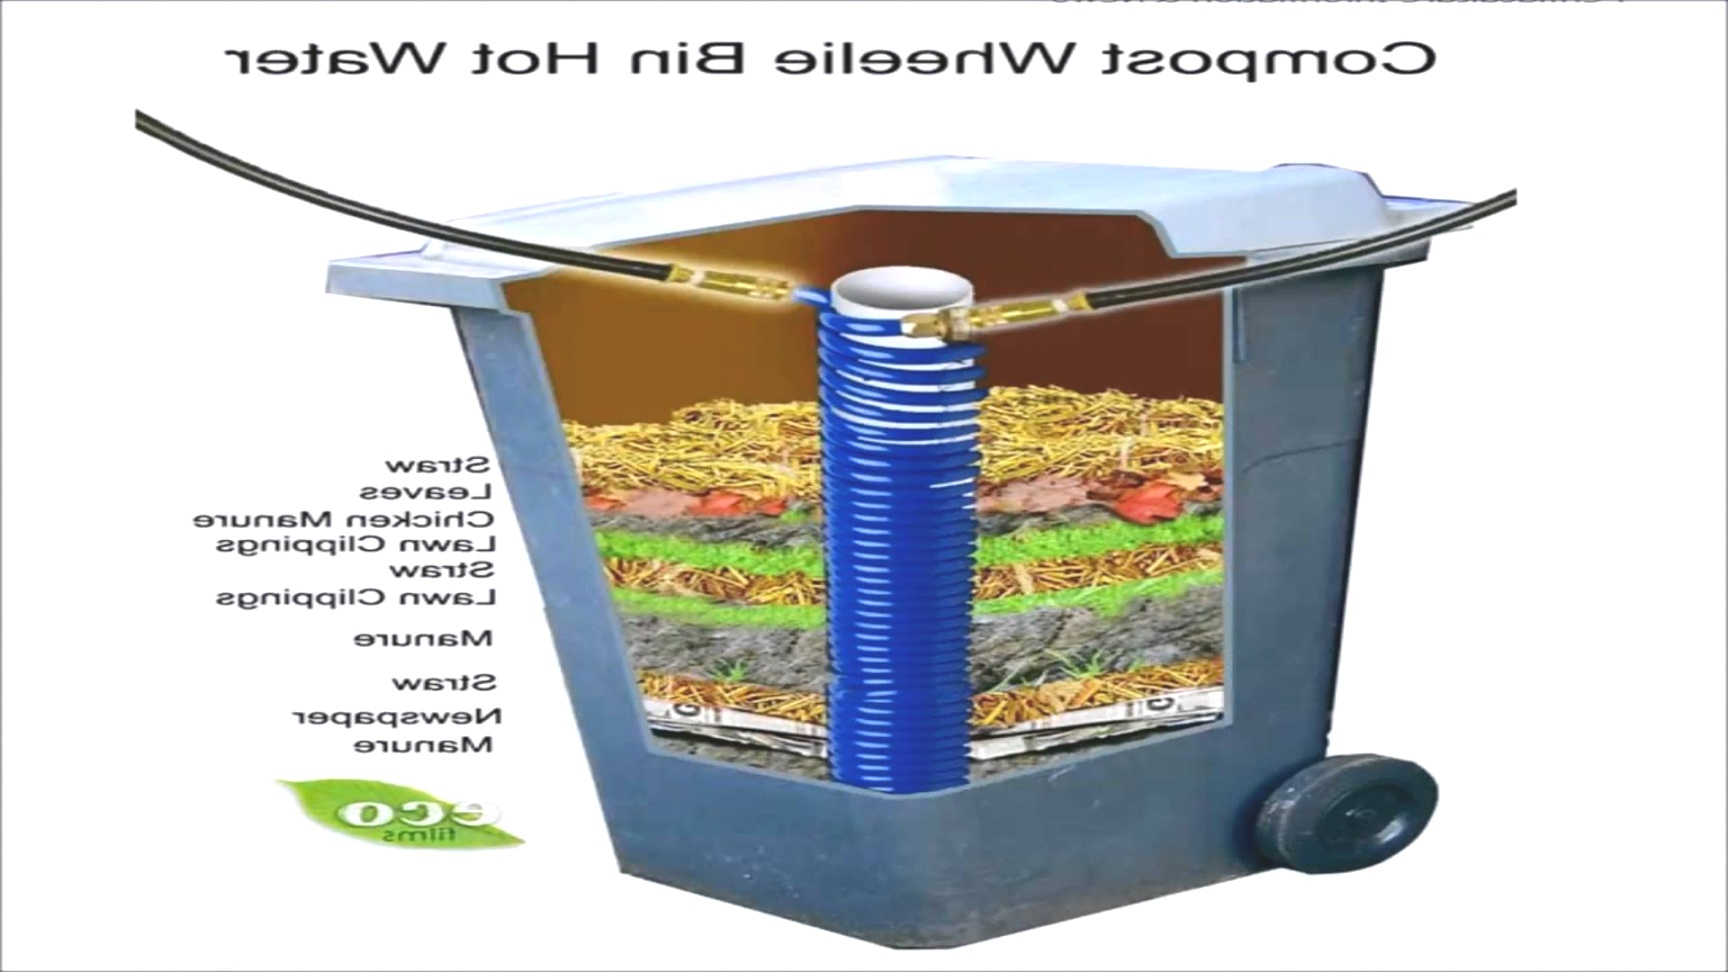 small greenhouse heater   DIY Compost Heater Makes Hot Water in a Wheelie Bin - YouTube   small greenhouse heater